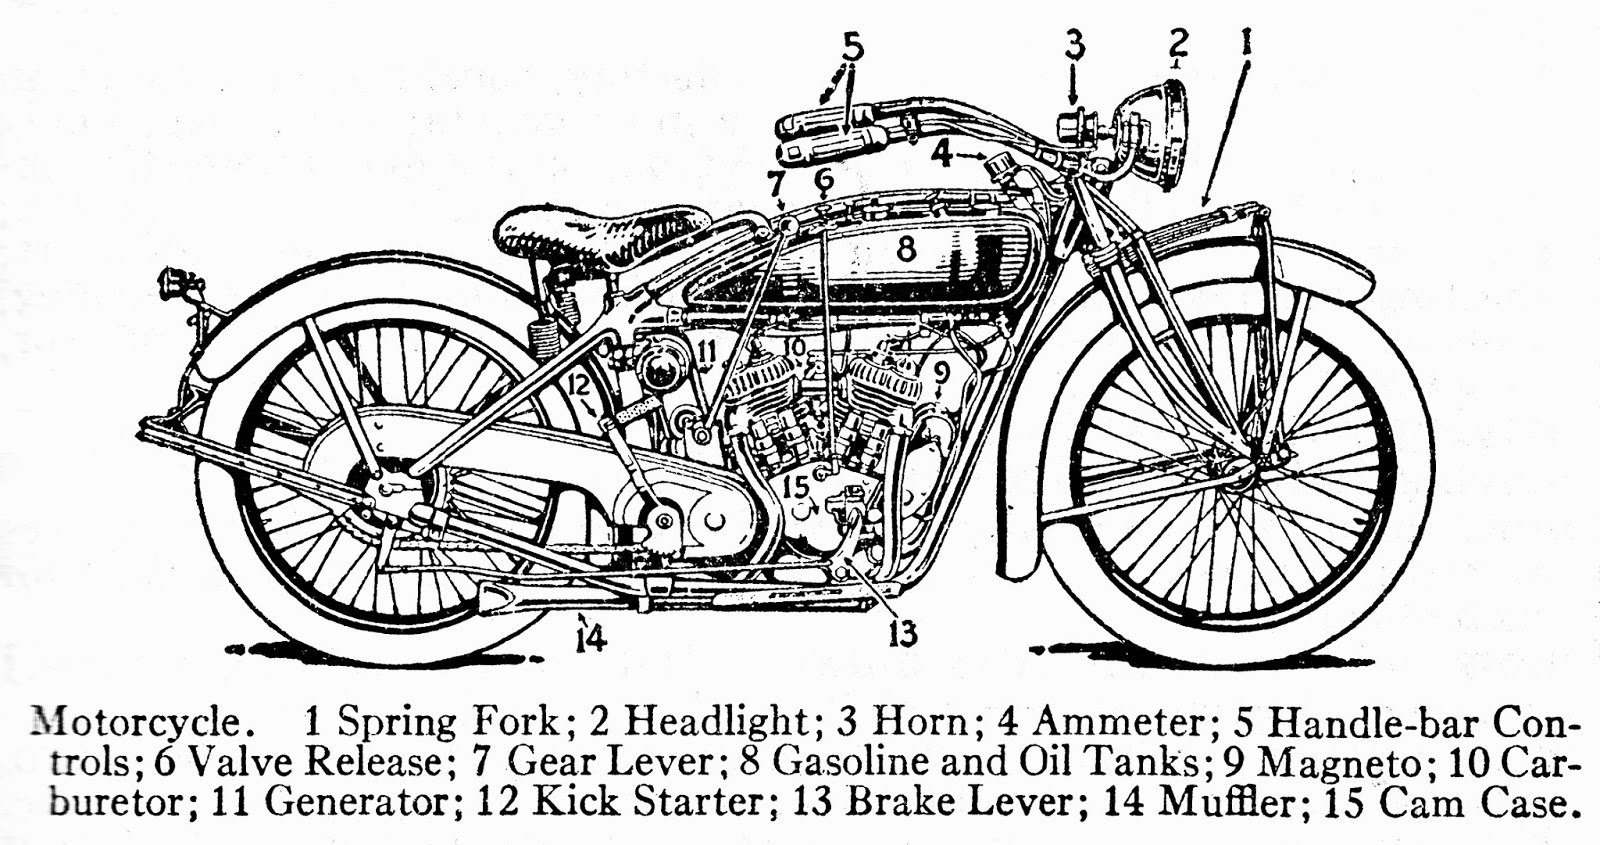 Just A Car Guy: a 1934 Motorcycle stayed in the dictionary